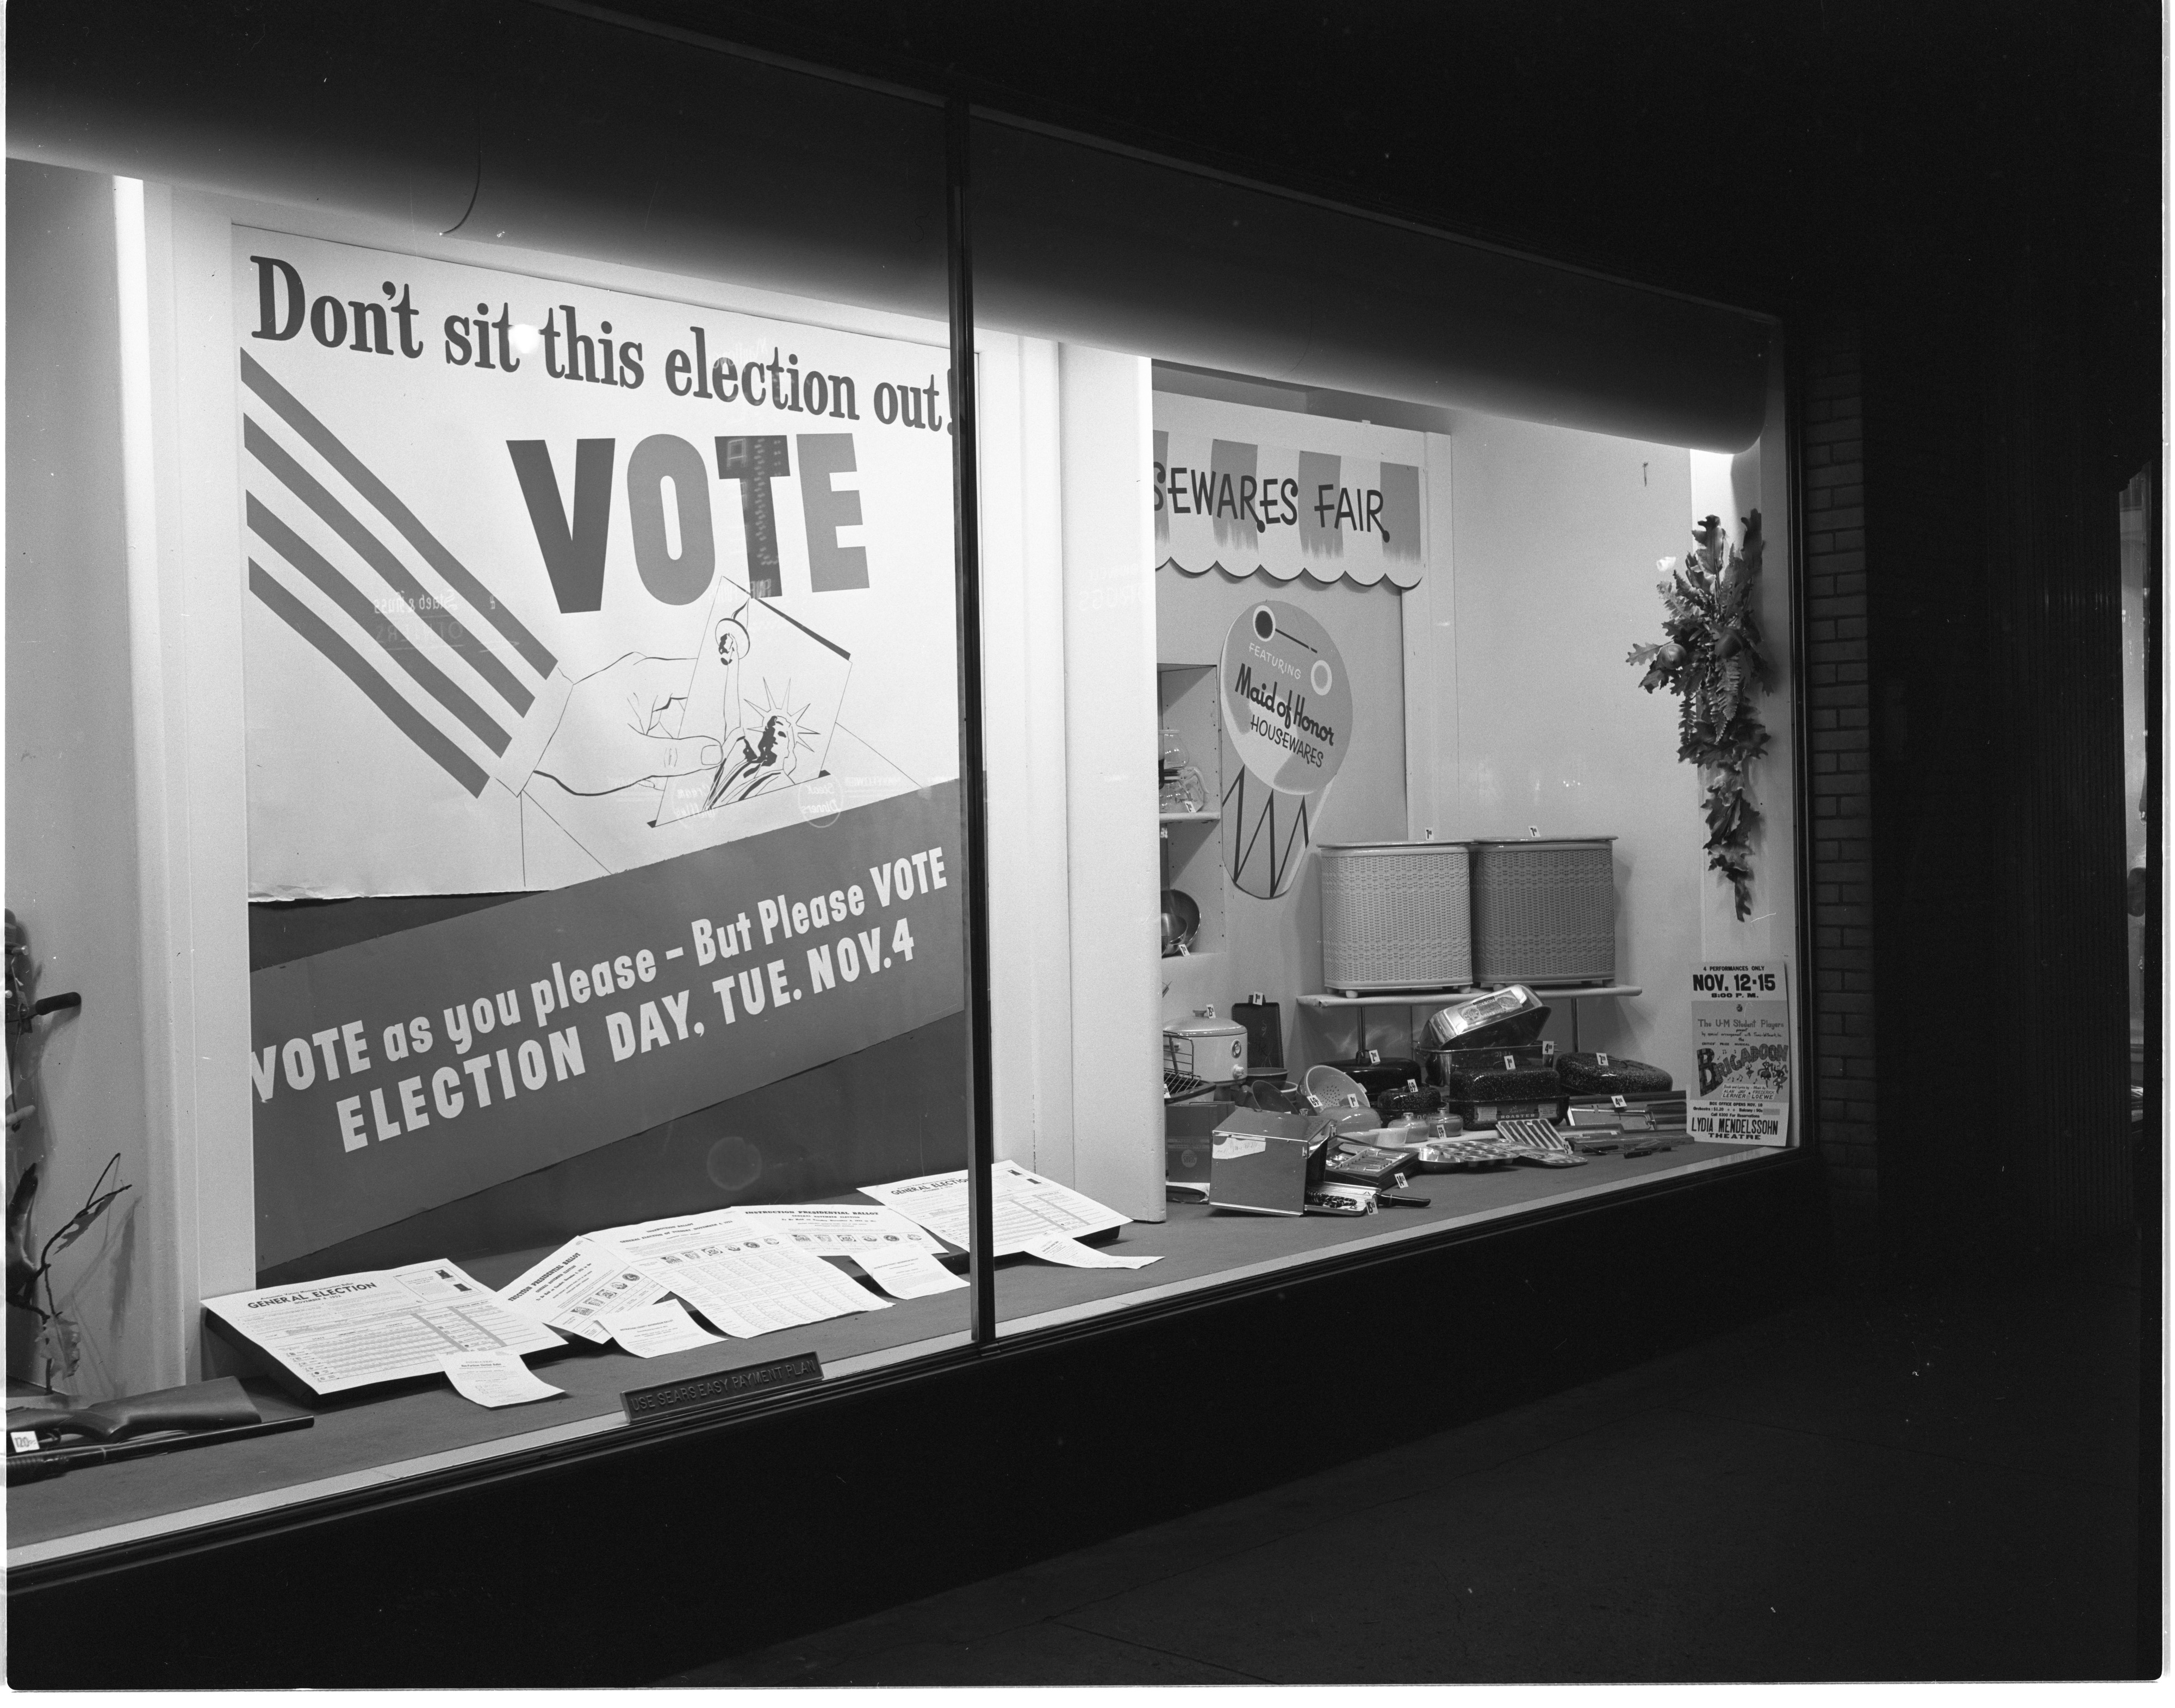 Election Day Display In Sears Roebuck & Co. Window, October 1952 image